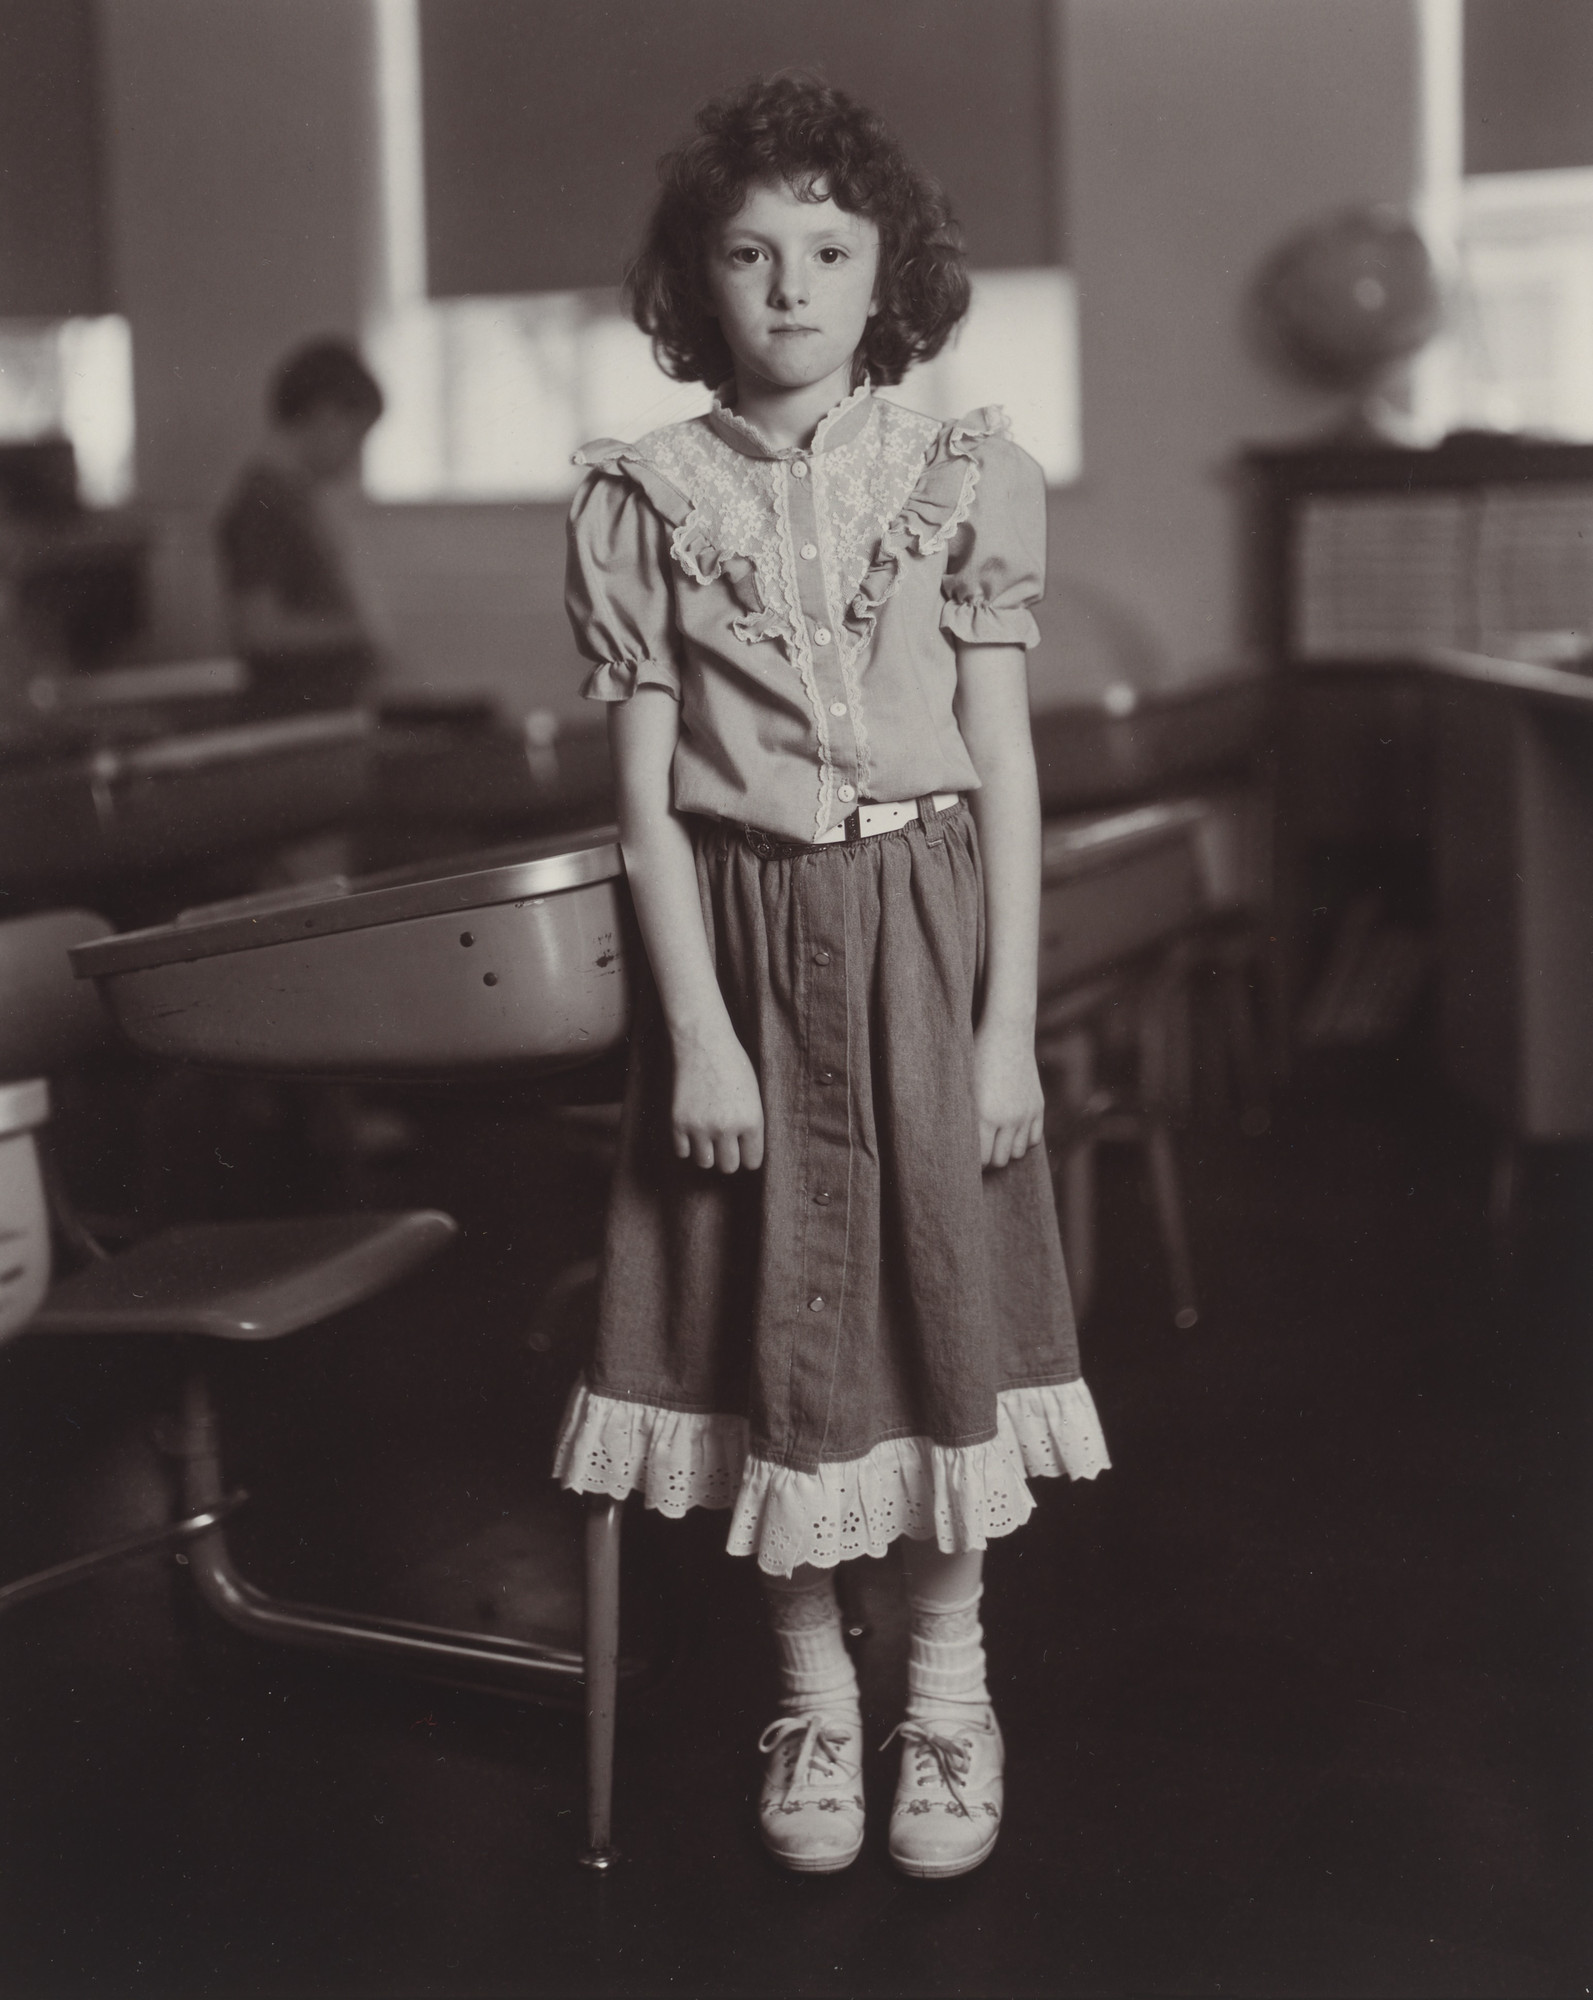 Judith Joy Ross. Virginia Merola, A.D. Thomas Elementary School, Hazleton, Pennsylvania. 1993